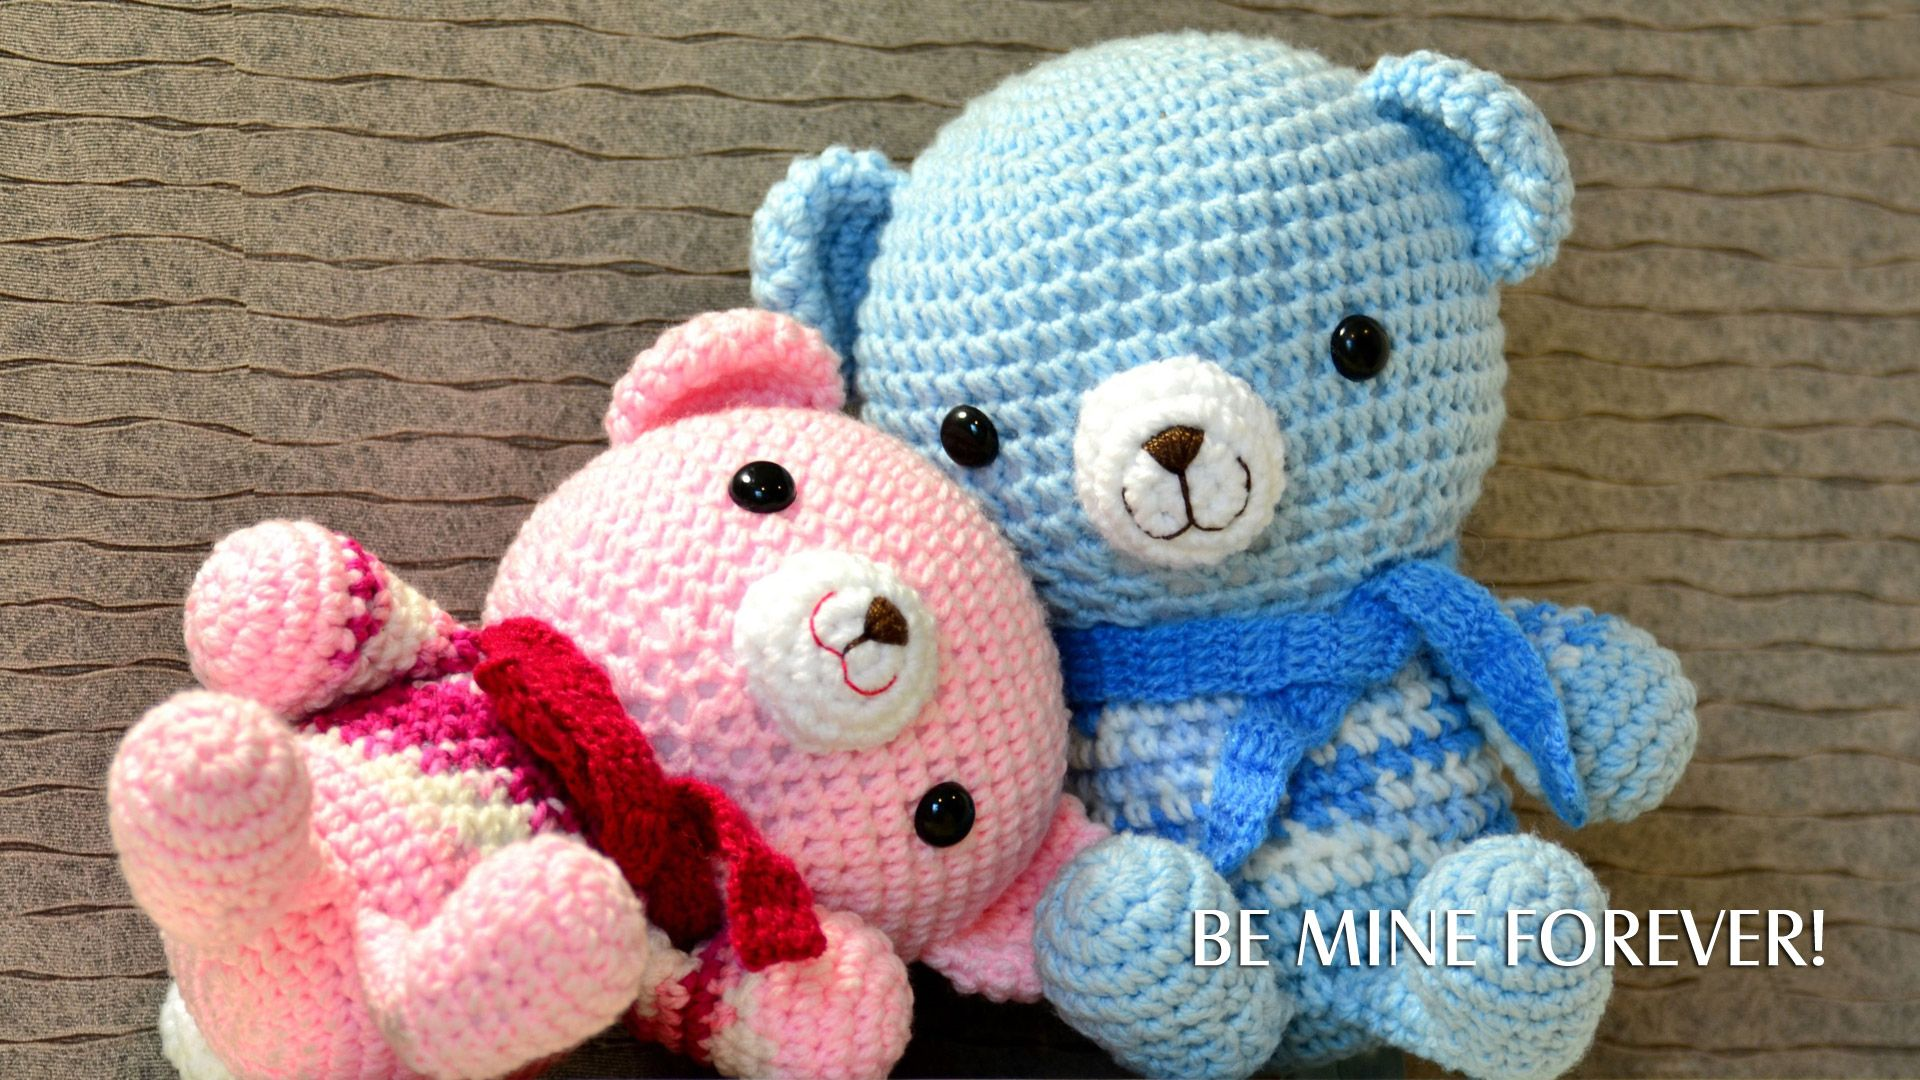 Cute teddy bear wallpapers wallpapers for desktop pinterest cute teddy bear wallpapers voltagebd Gallery